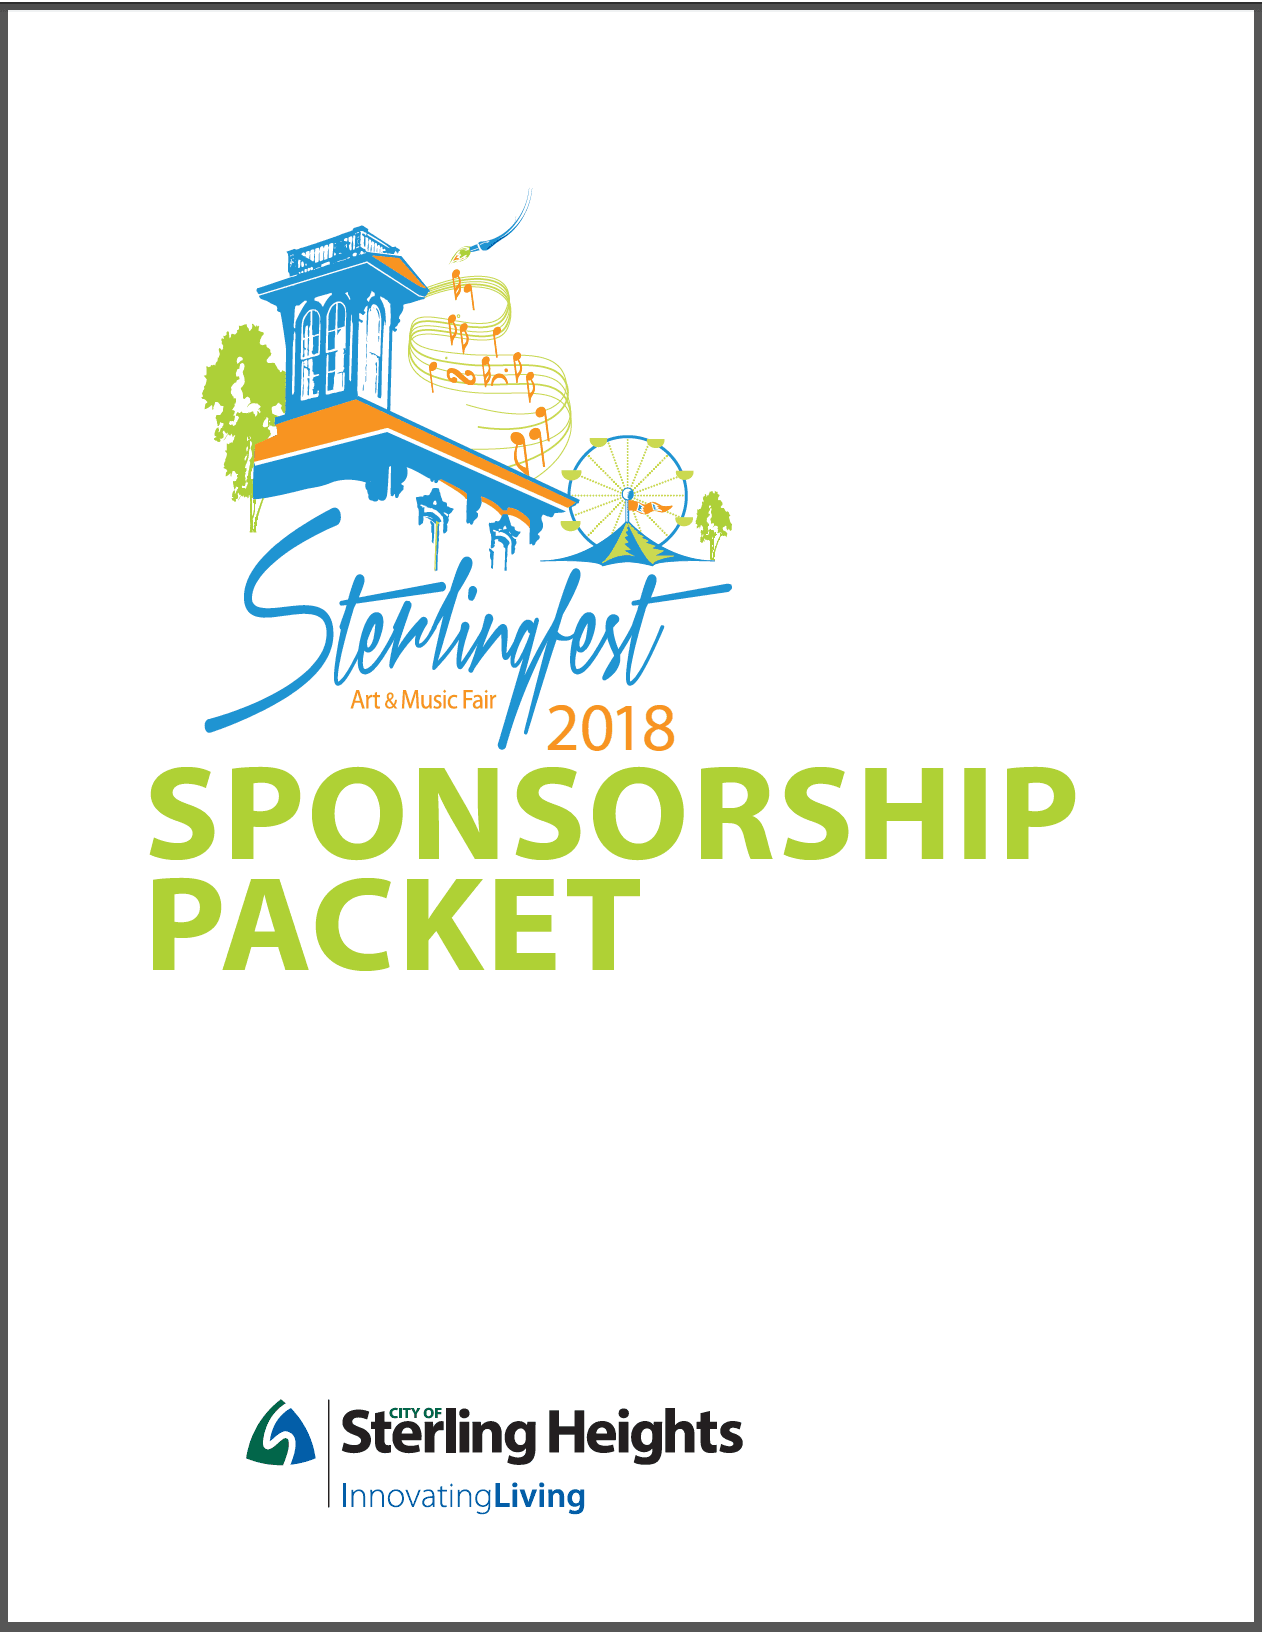 Sterlingfest Sponsorship Packet Cover